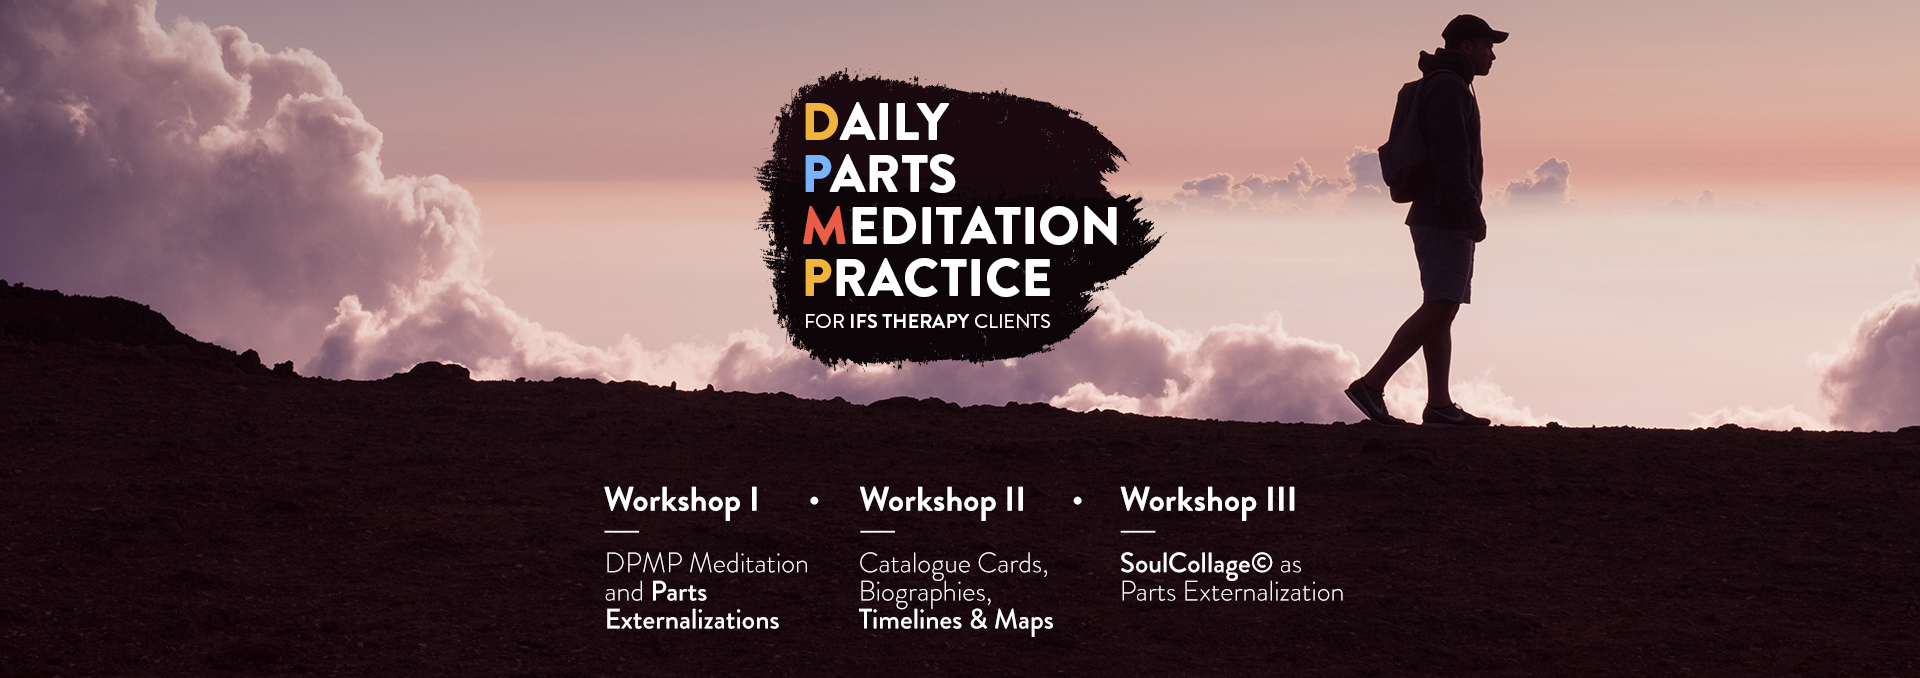 Daily Parts Meditation Practice for Clients 2